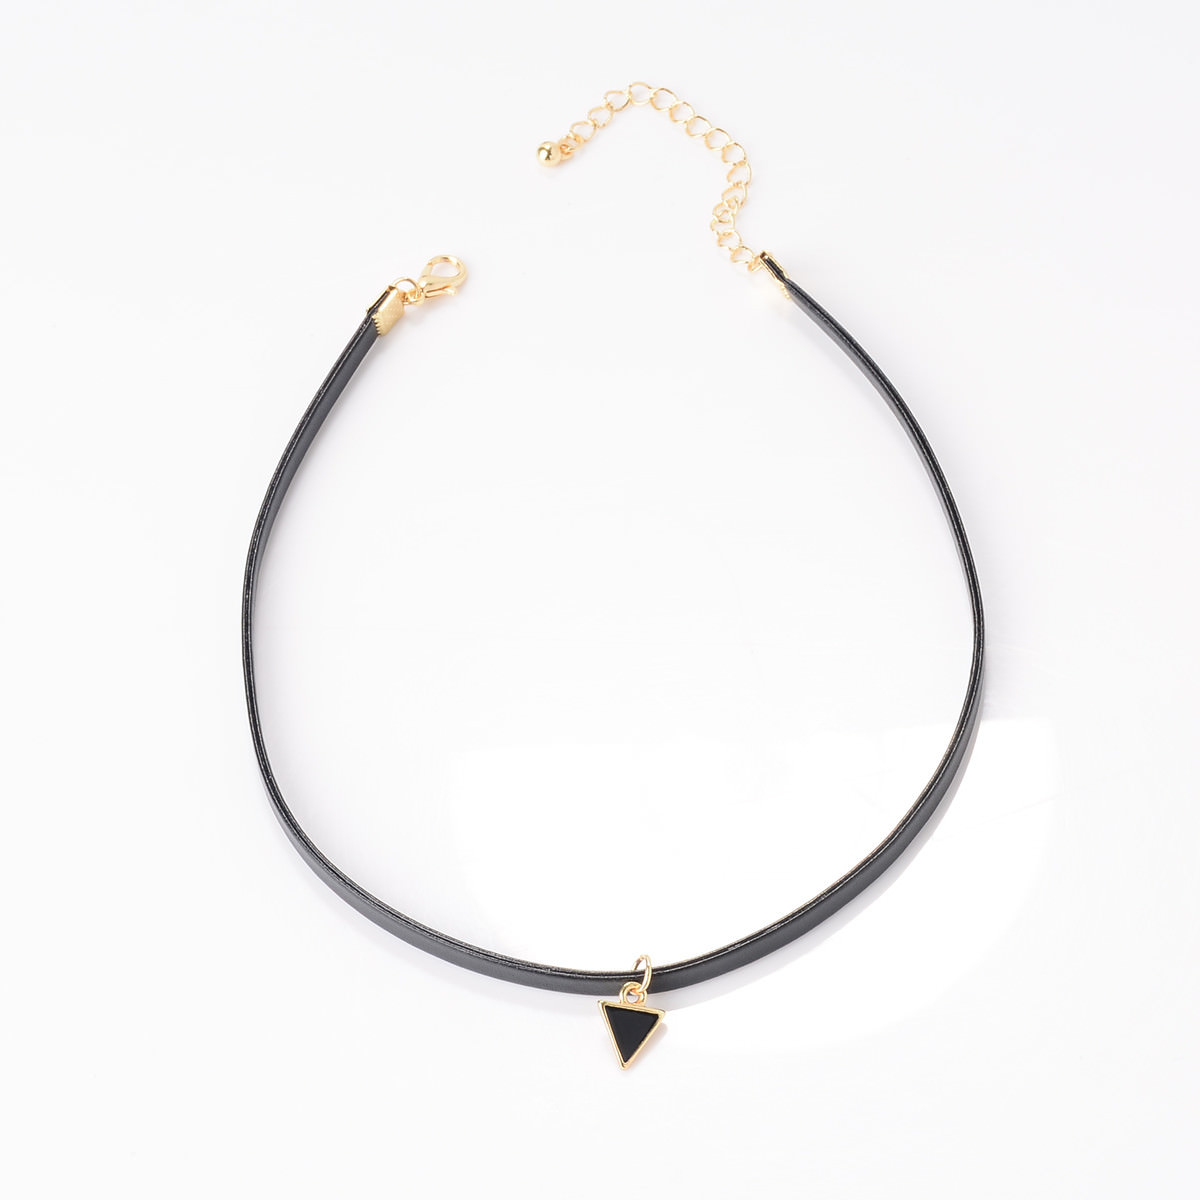 5028-ae32b8f6cf9d87ea6257a924889ad86b Trendy Punk Style Leather Rope Choker Necklace With Triangle Pendant